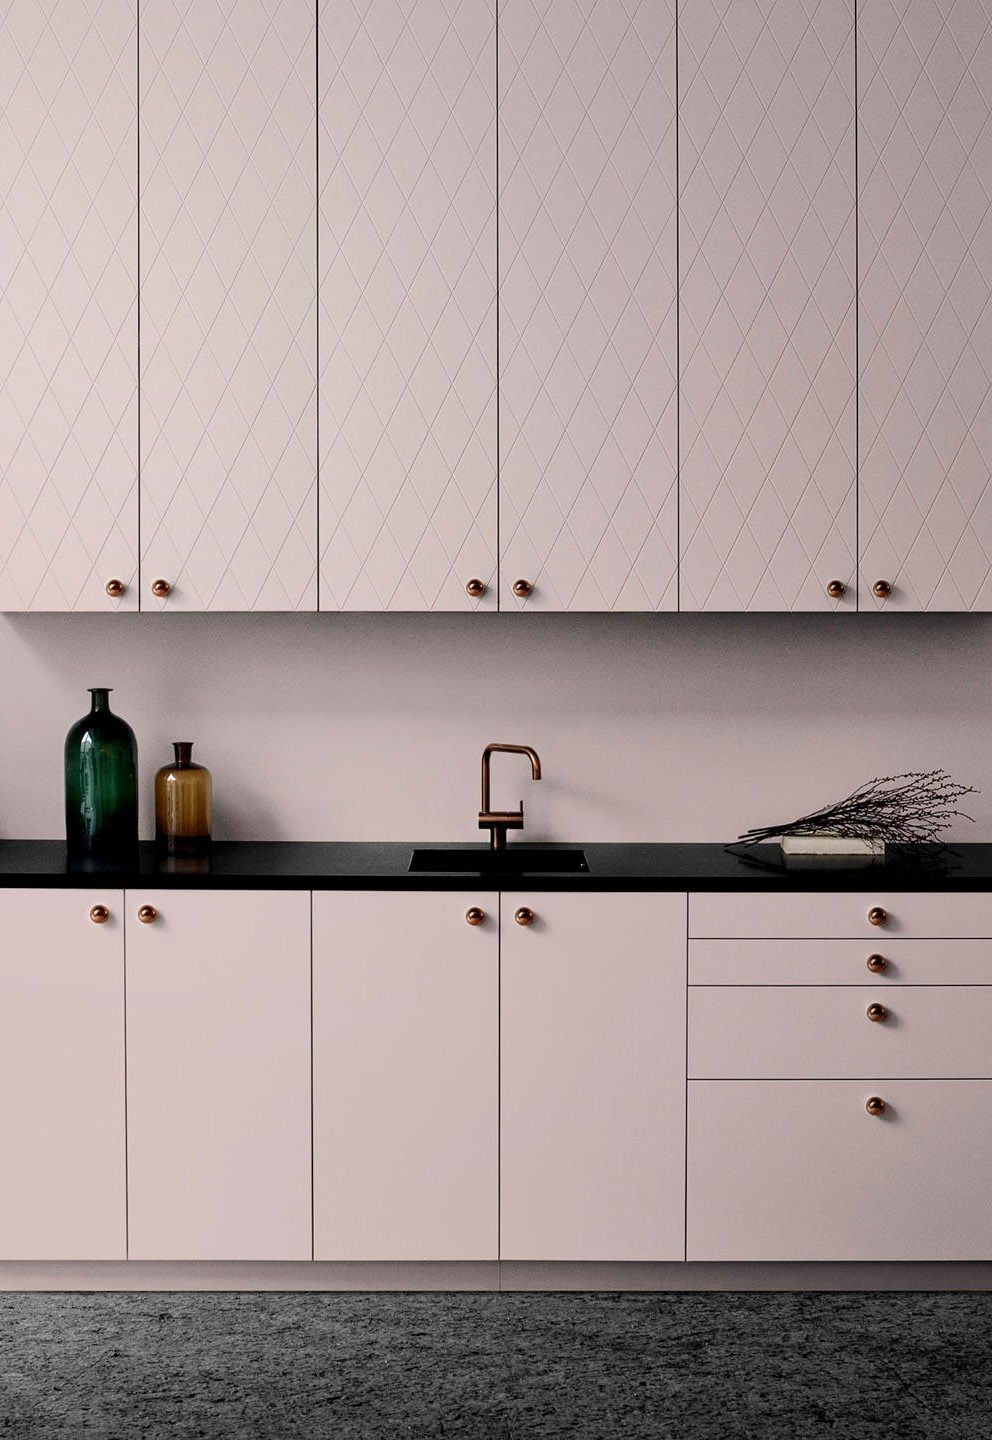 Six brands to help you customise IKEA kitchen cabinets - Pink kitchen cabinets, Ikea kitchen cabinets, Ikea kitchen, Kitchen cabinets, Kitchen remodel cost, Pink kitchen - It's surprisingly easy to transform standard IKEA kitchen cabinets with customised doors and drawer fronts  Here are six of the best companies to help